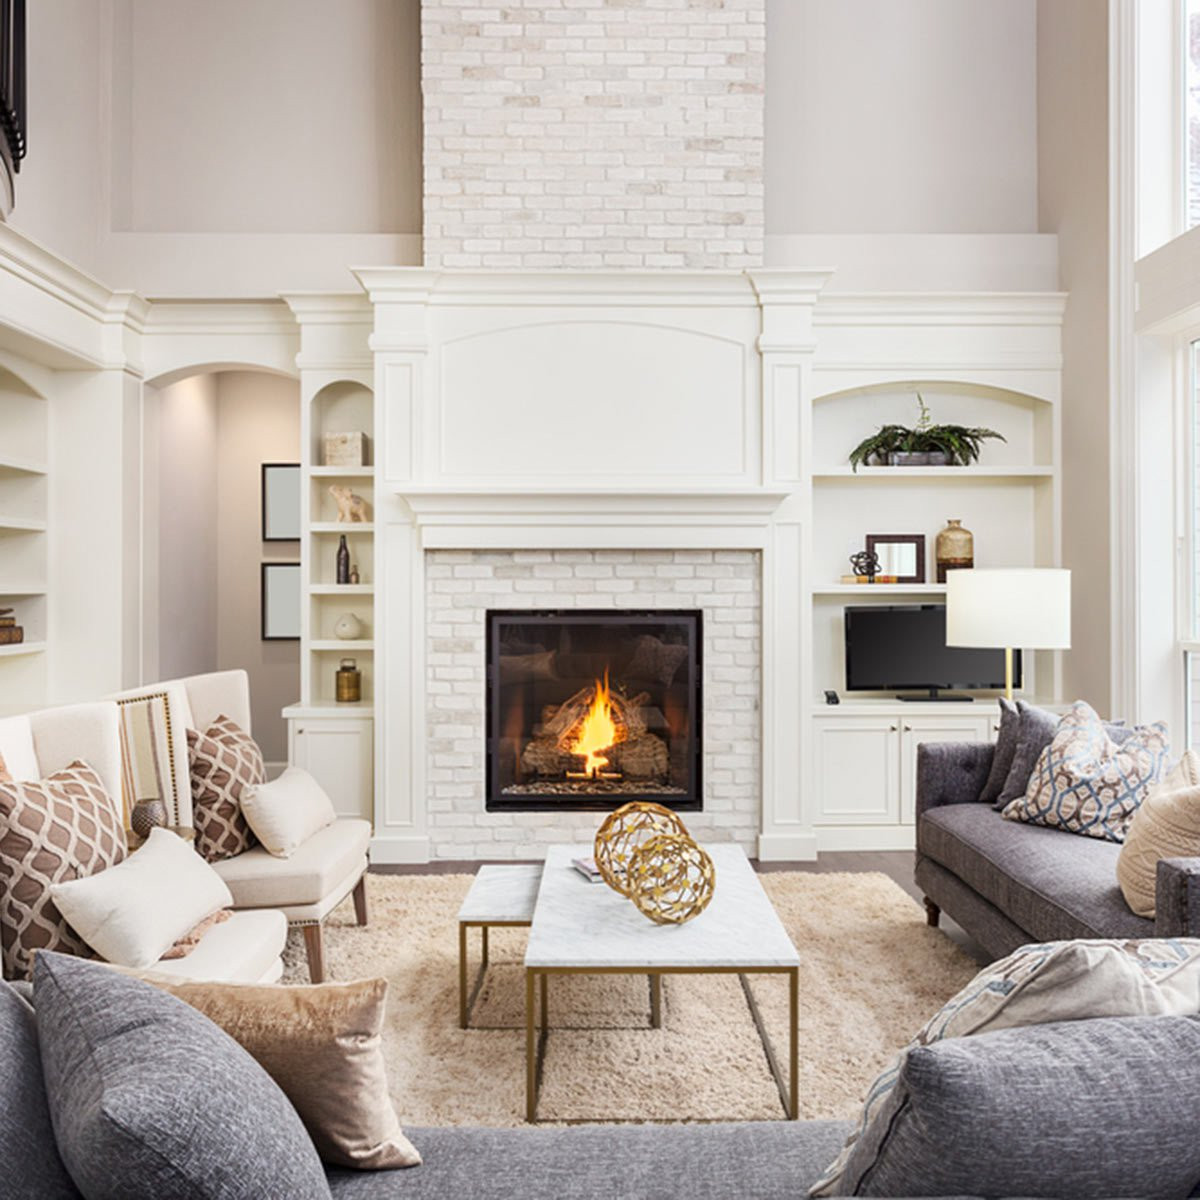 Best ideas about Accent Wall Ideas With Fireplace . Save or Pin 15 Stunning Accent Wall Ideas You Can Do Now.